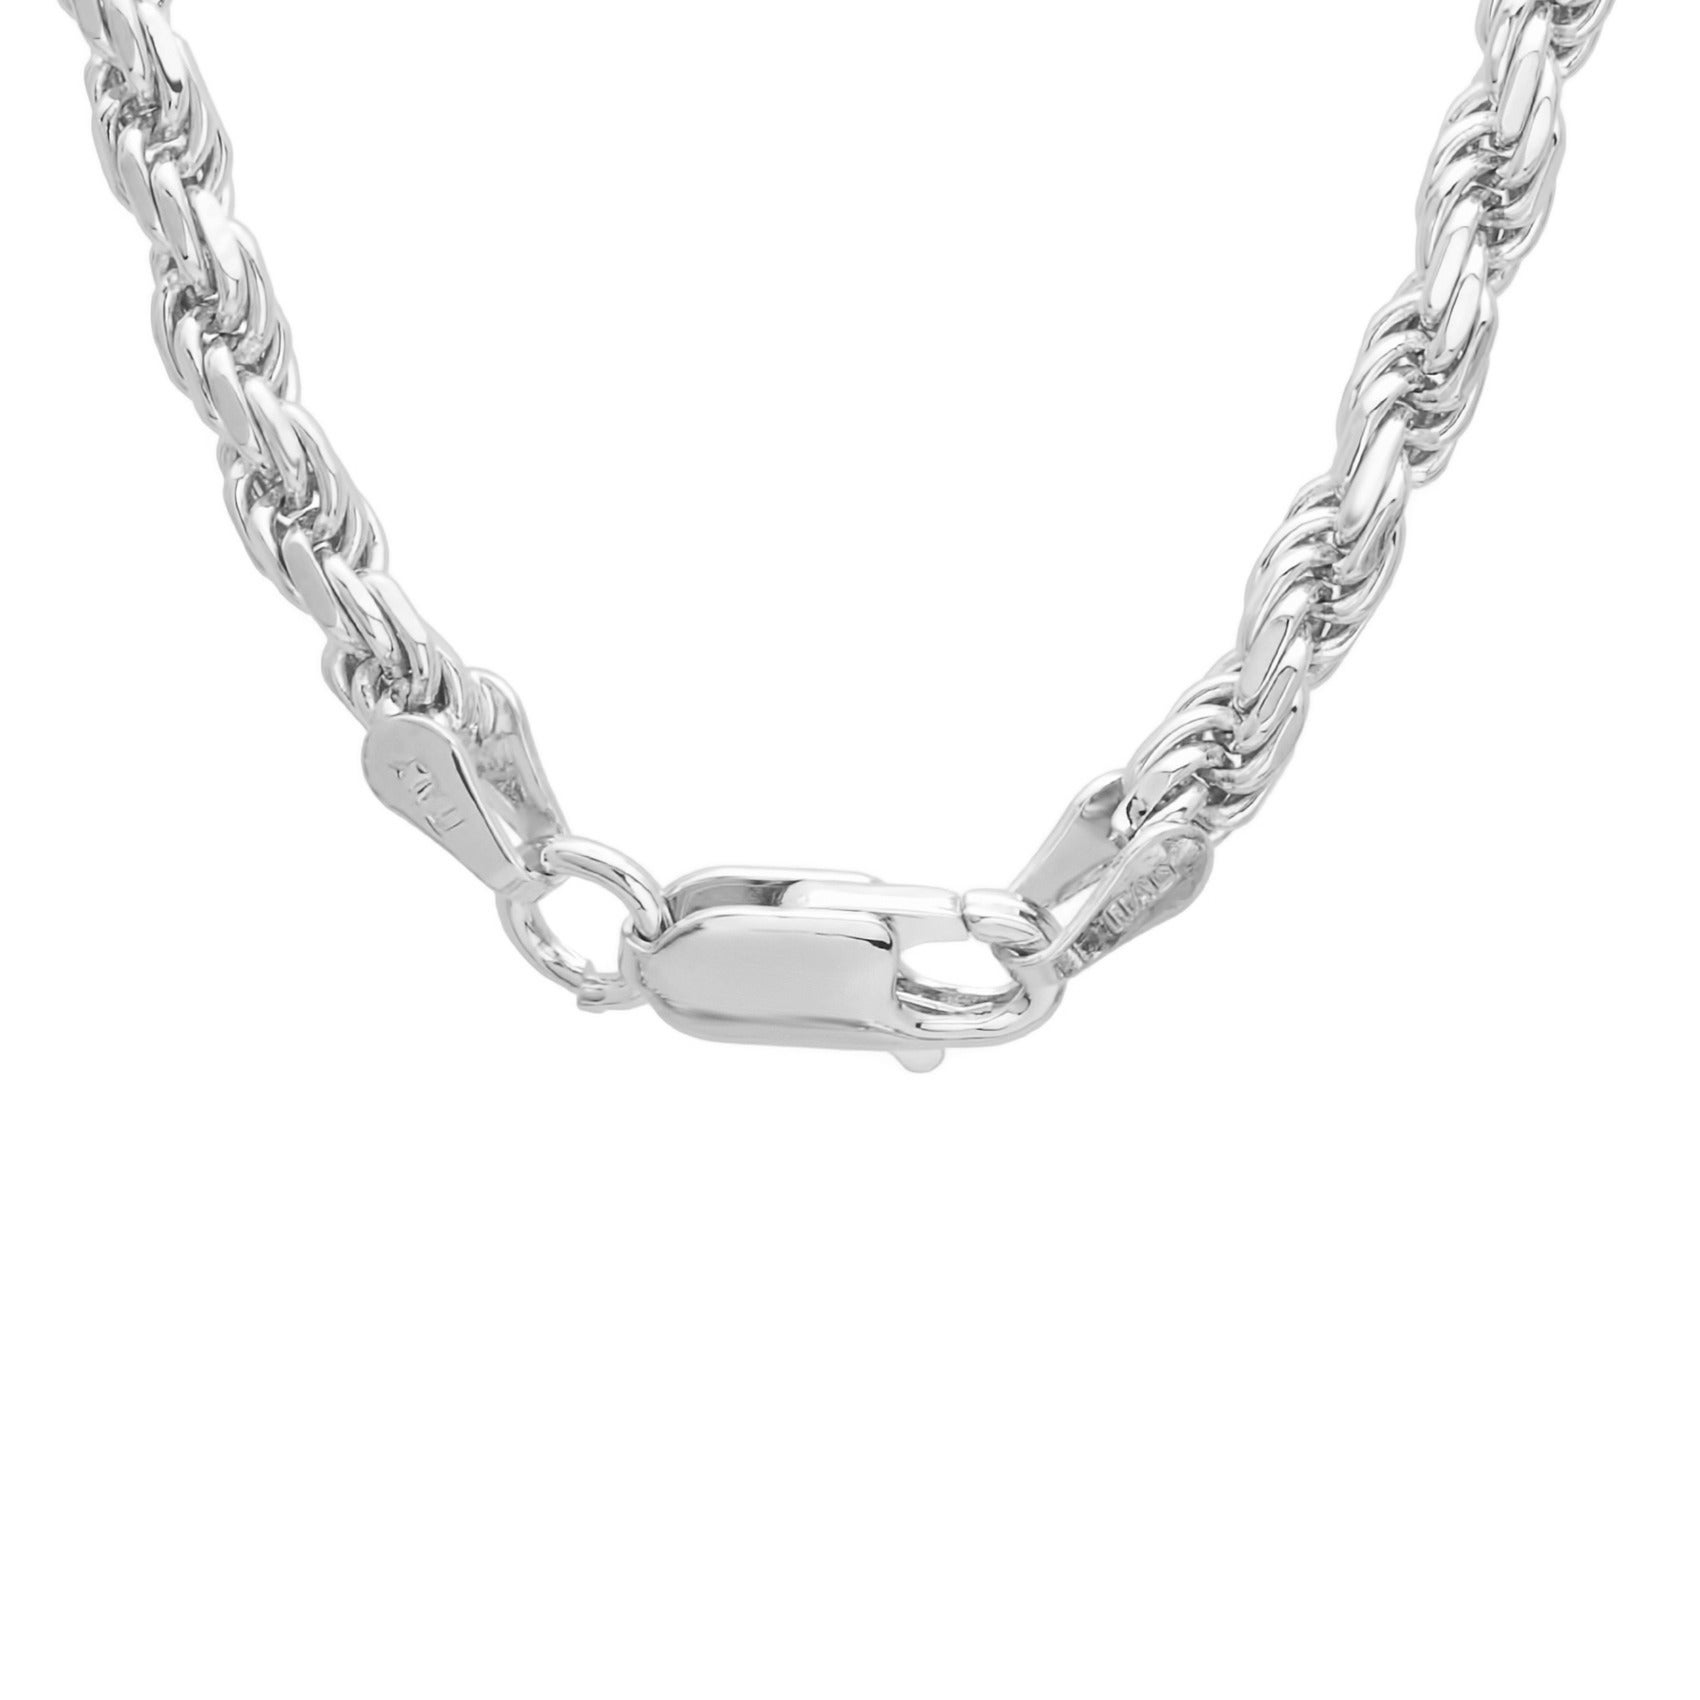 sterling good product silver tom link sterlingsilvermensdiamondcutcubanlinkchiannecklace heavy ole jewellery cut italy diamond mens necklace cuban chain